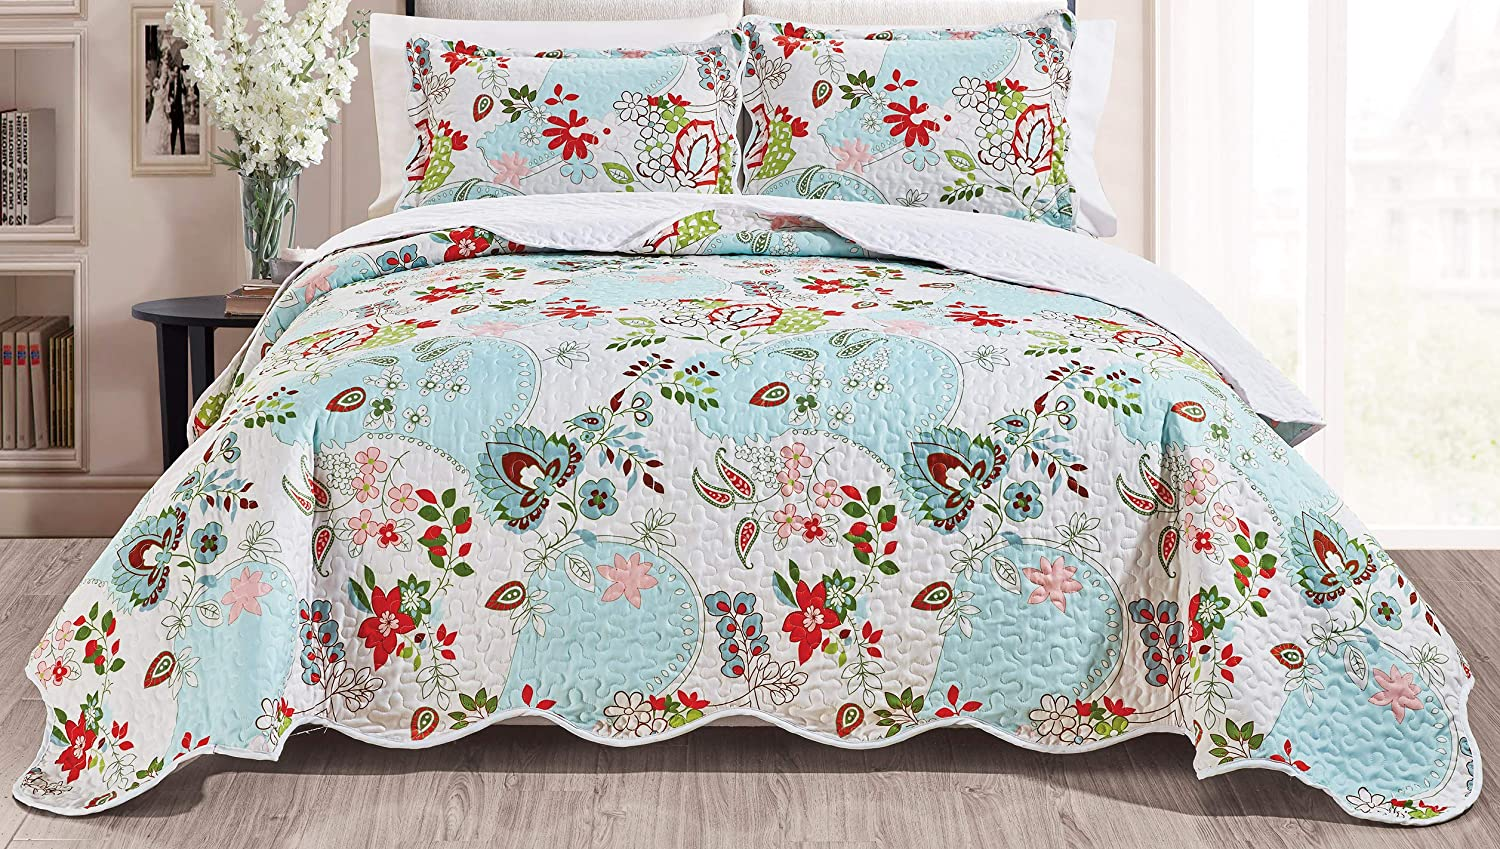 Quilt Set Reversible Bedspread Coverlet King Size Bed Cover (Red, Green, Blue Paisley)